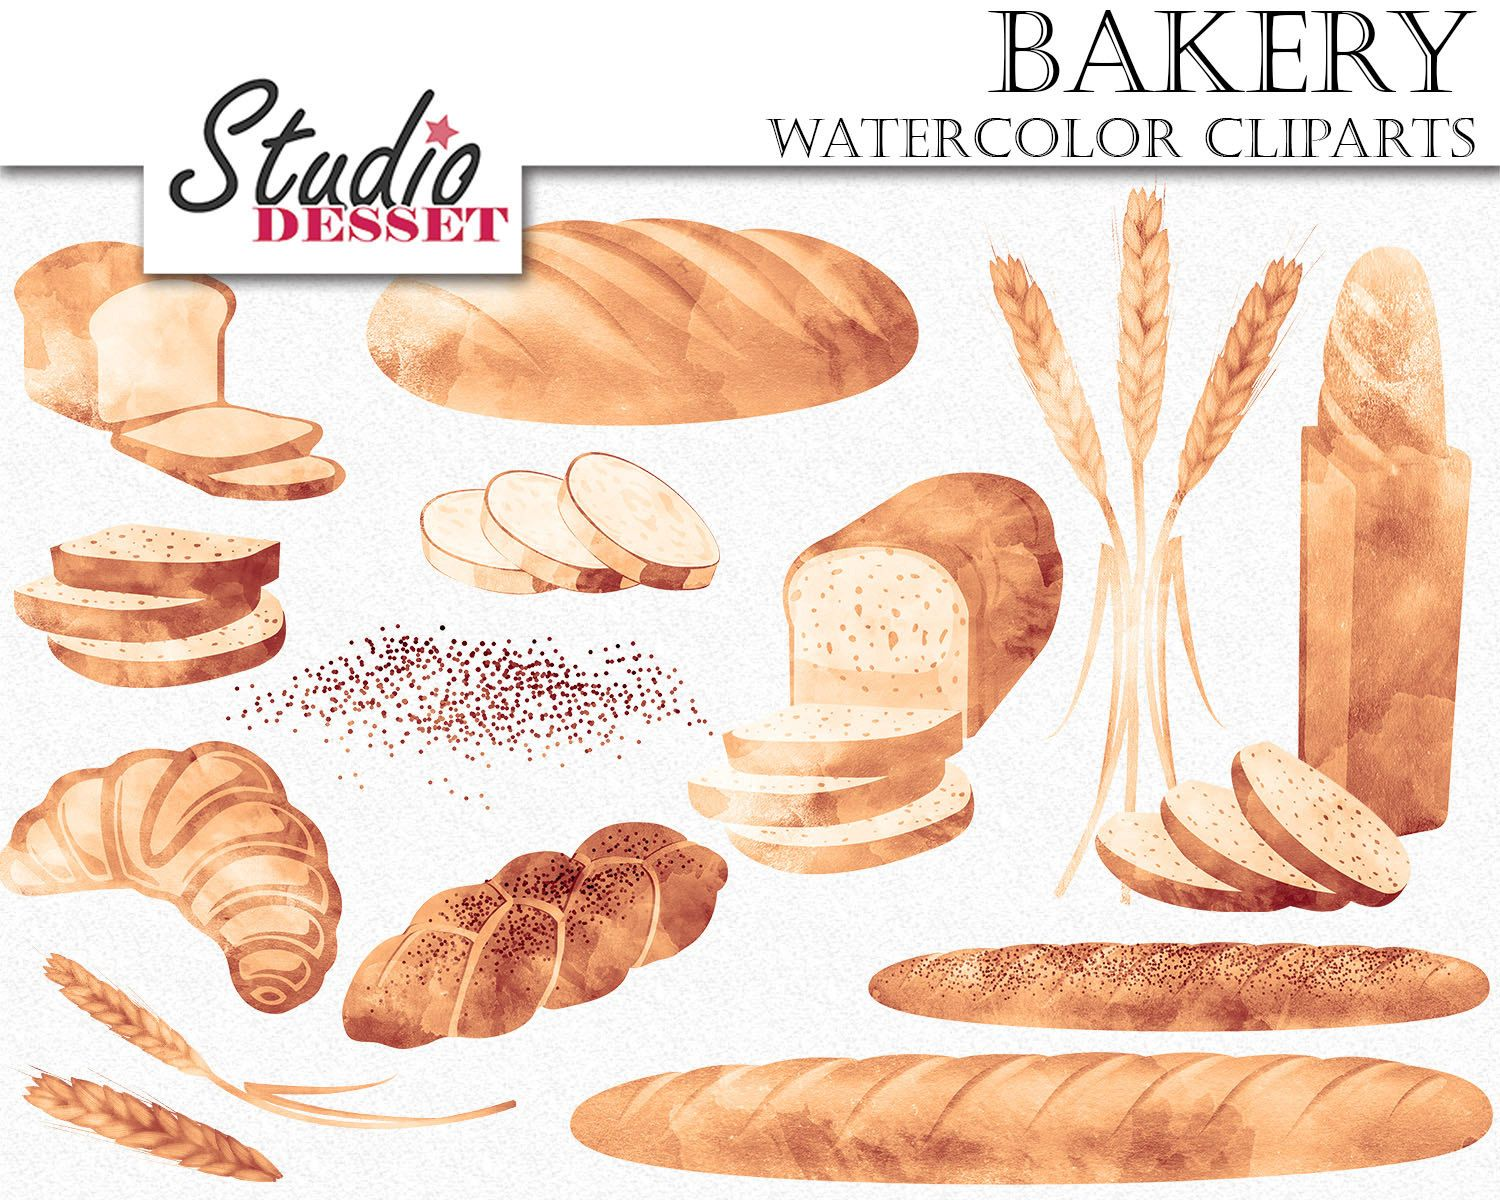 Baker clipart bread factory. Cliparts watercolor bakery graphics